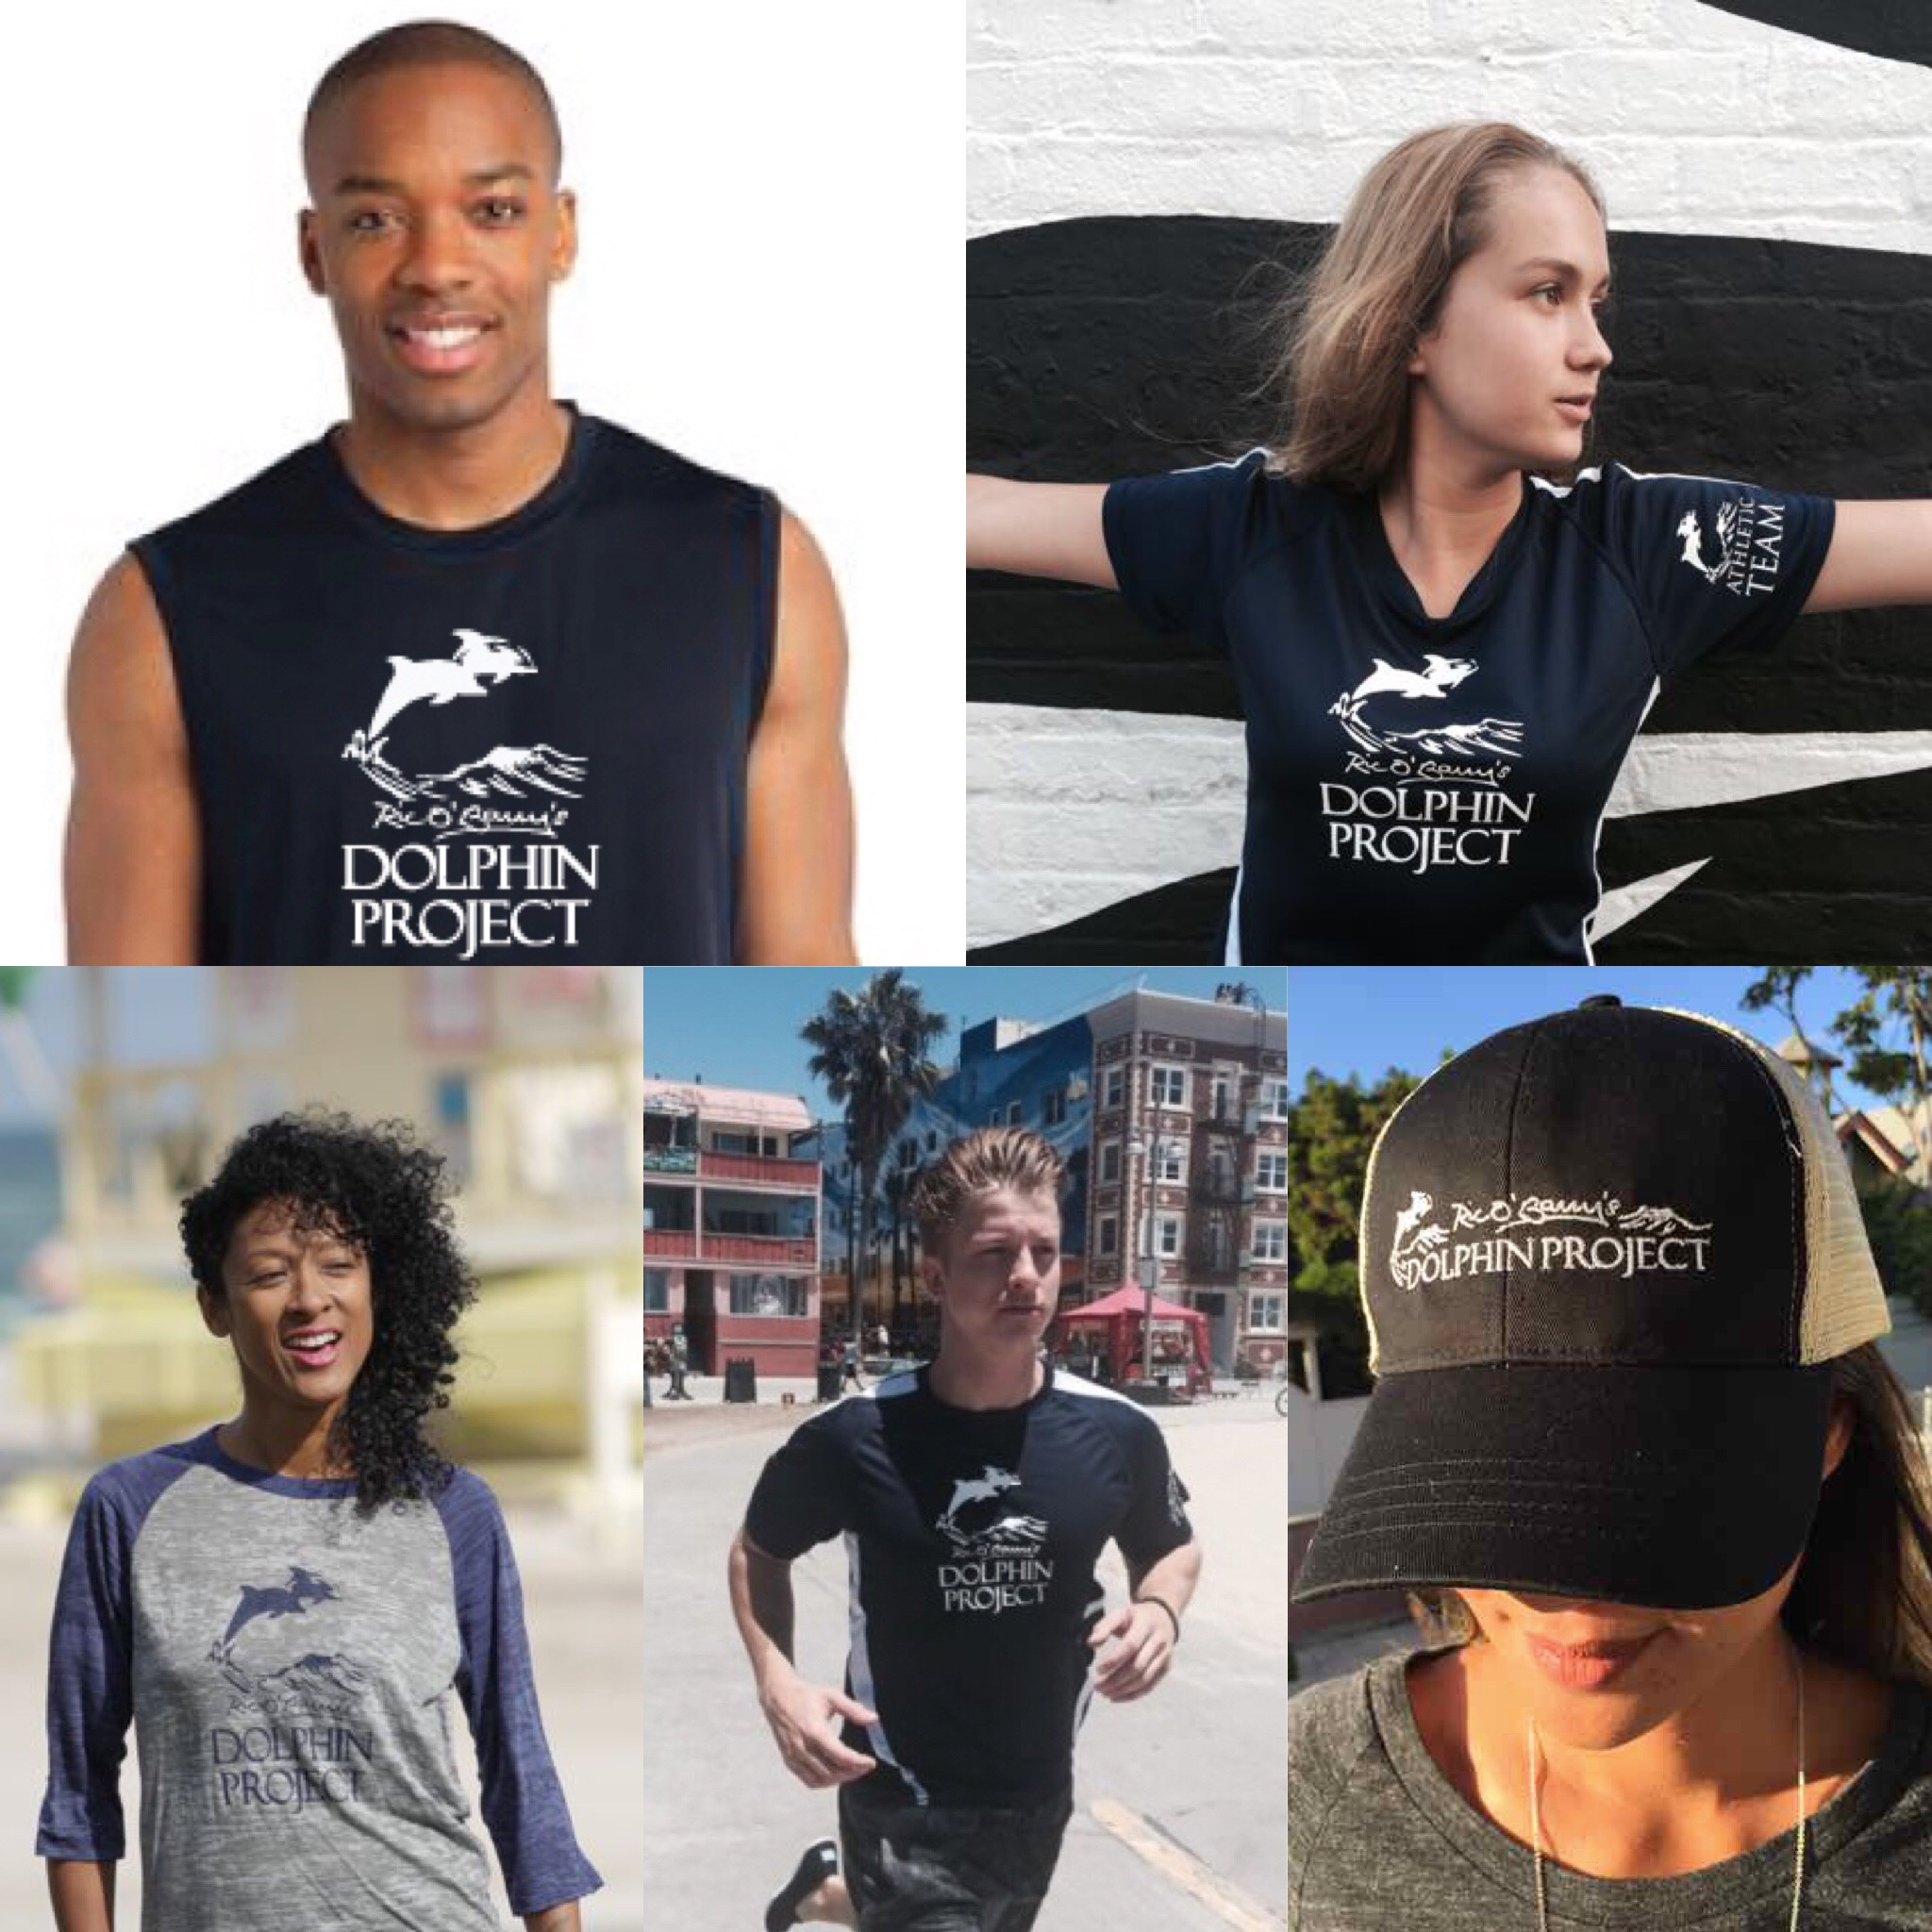 Shop authentic Dolphin Project gear